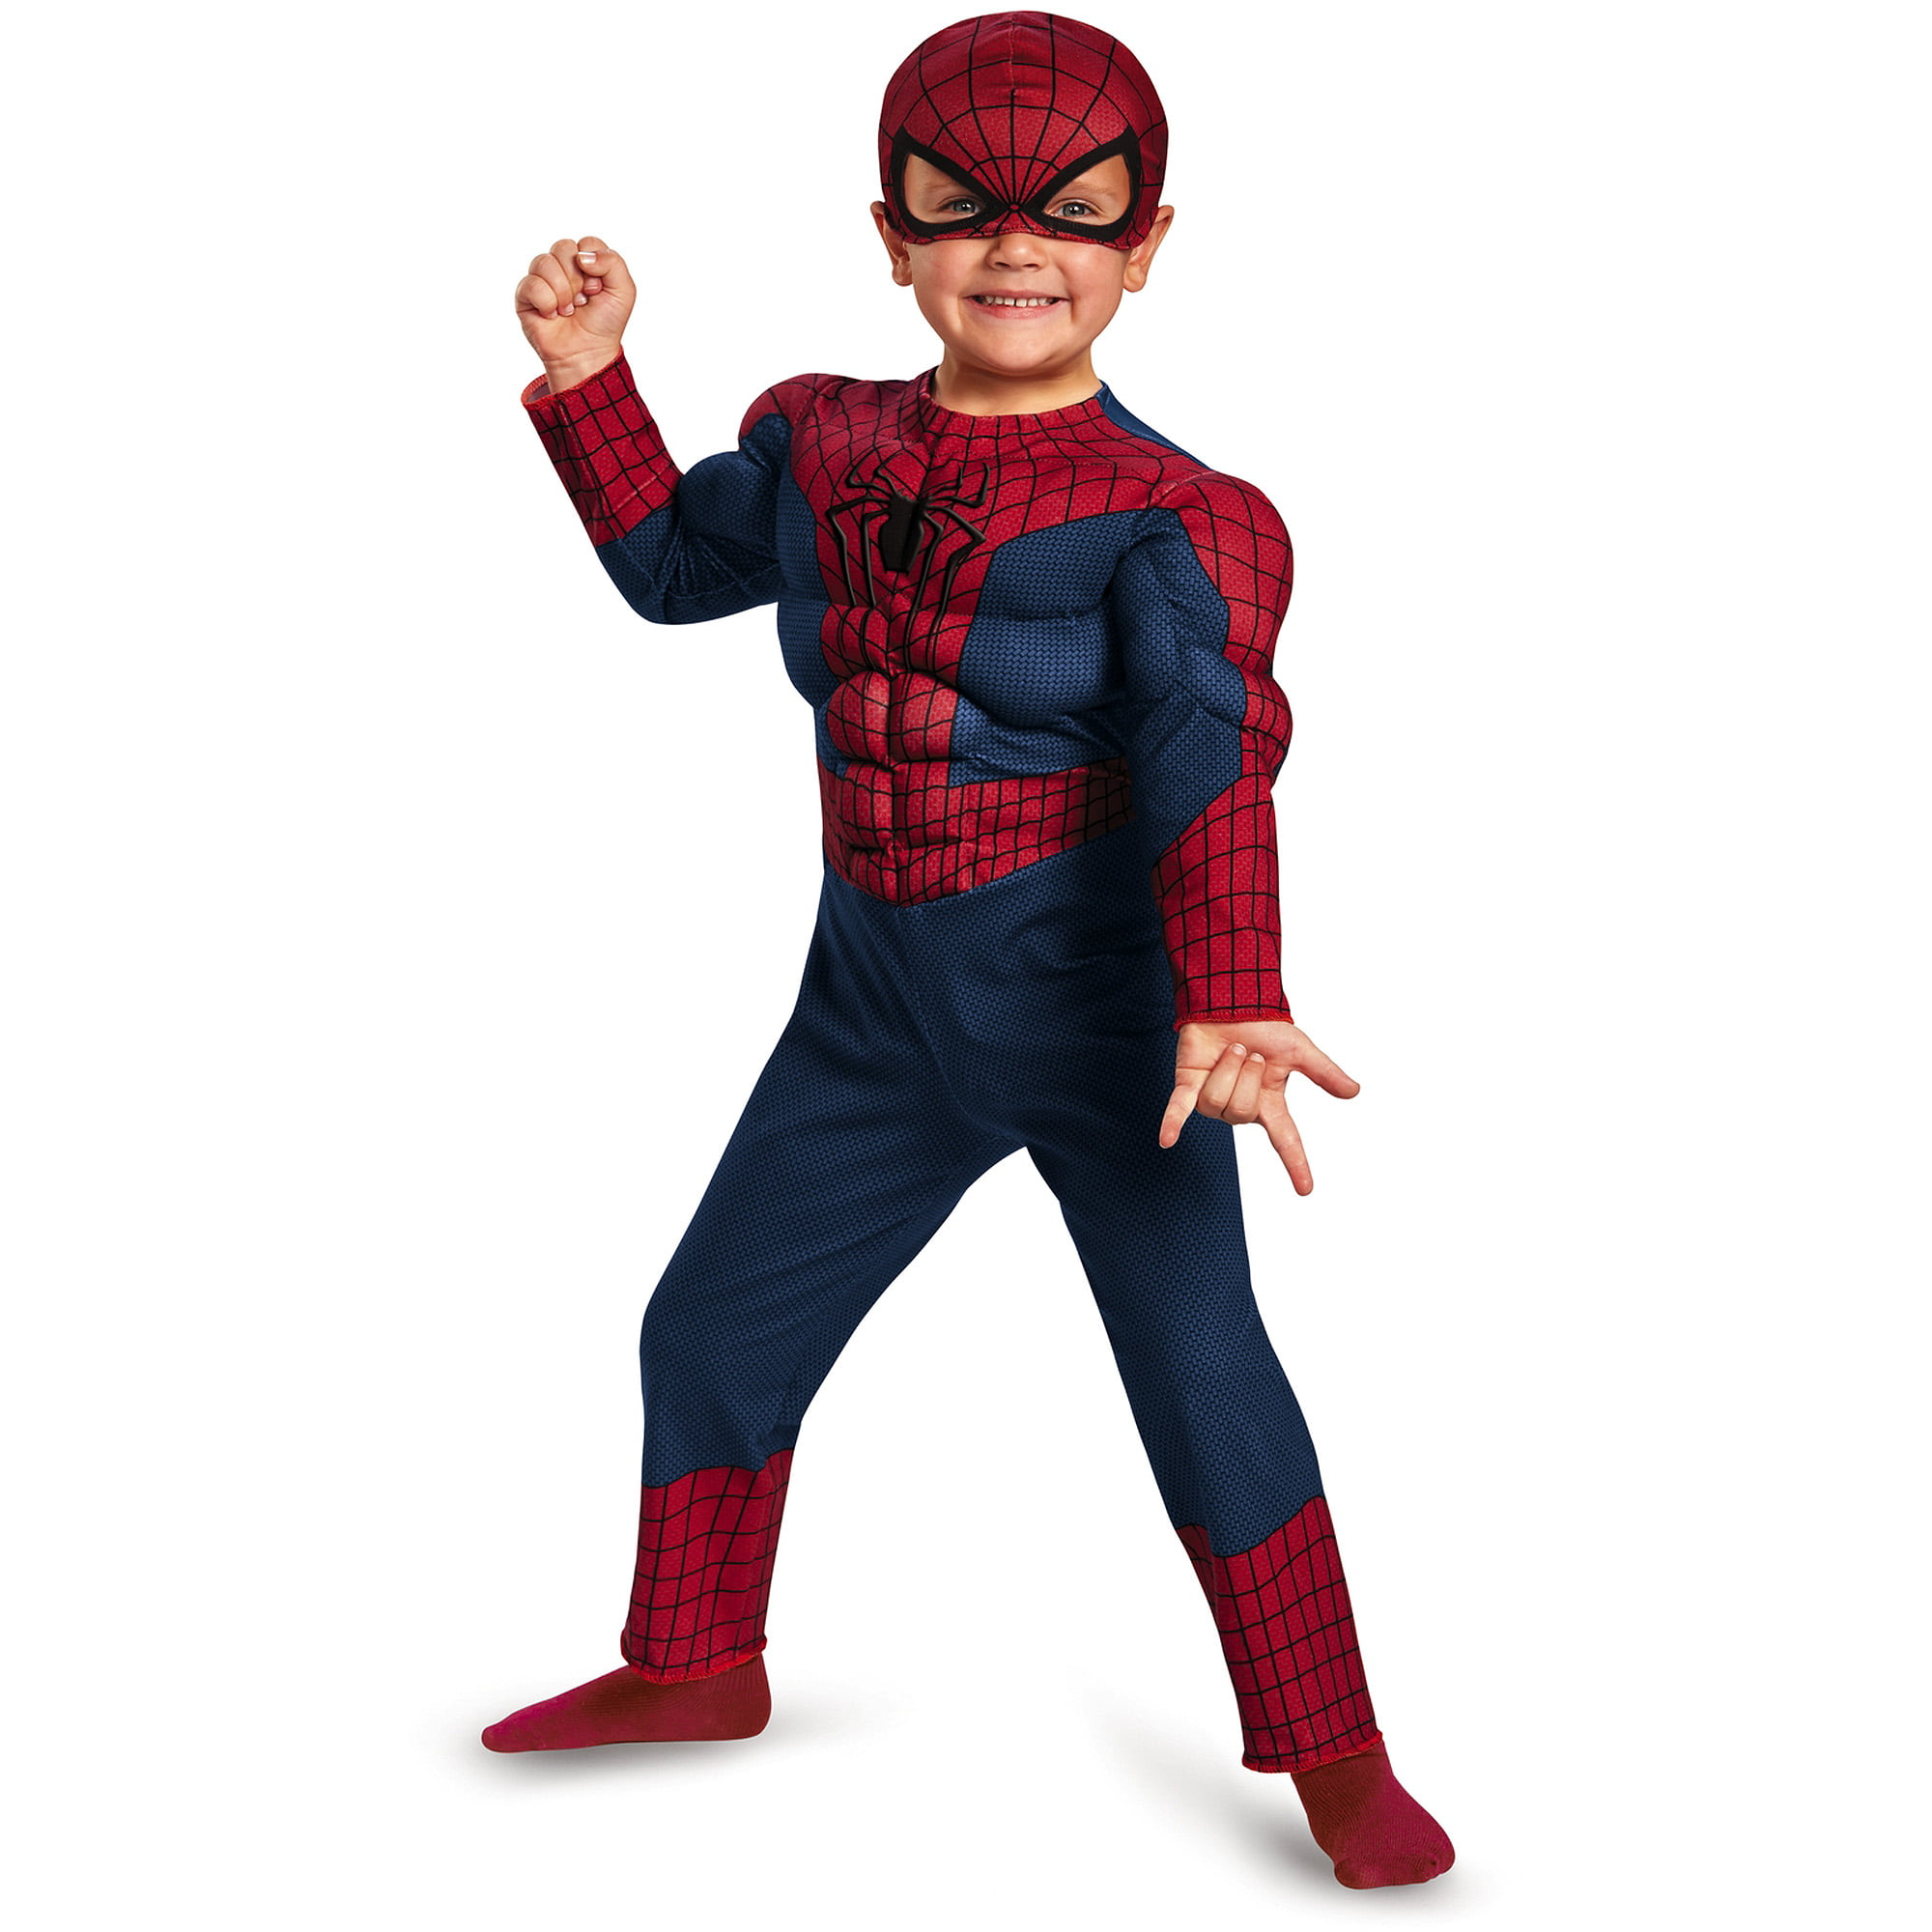 Spider-Man Movie 2 Muscle Toddler Halloween Costume - Walmart.com